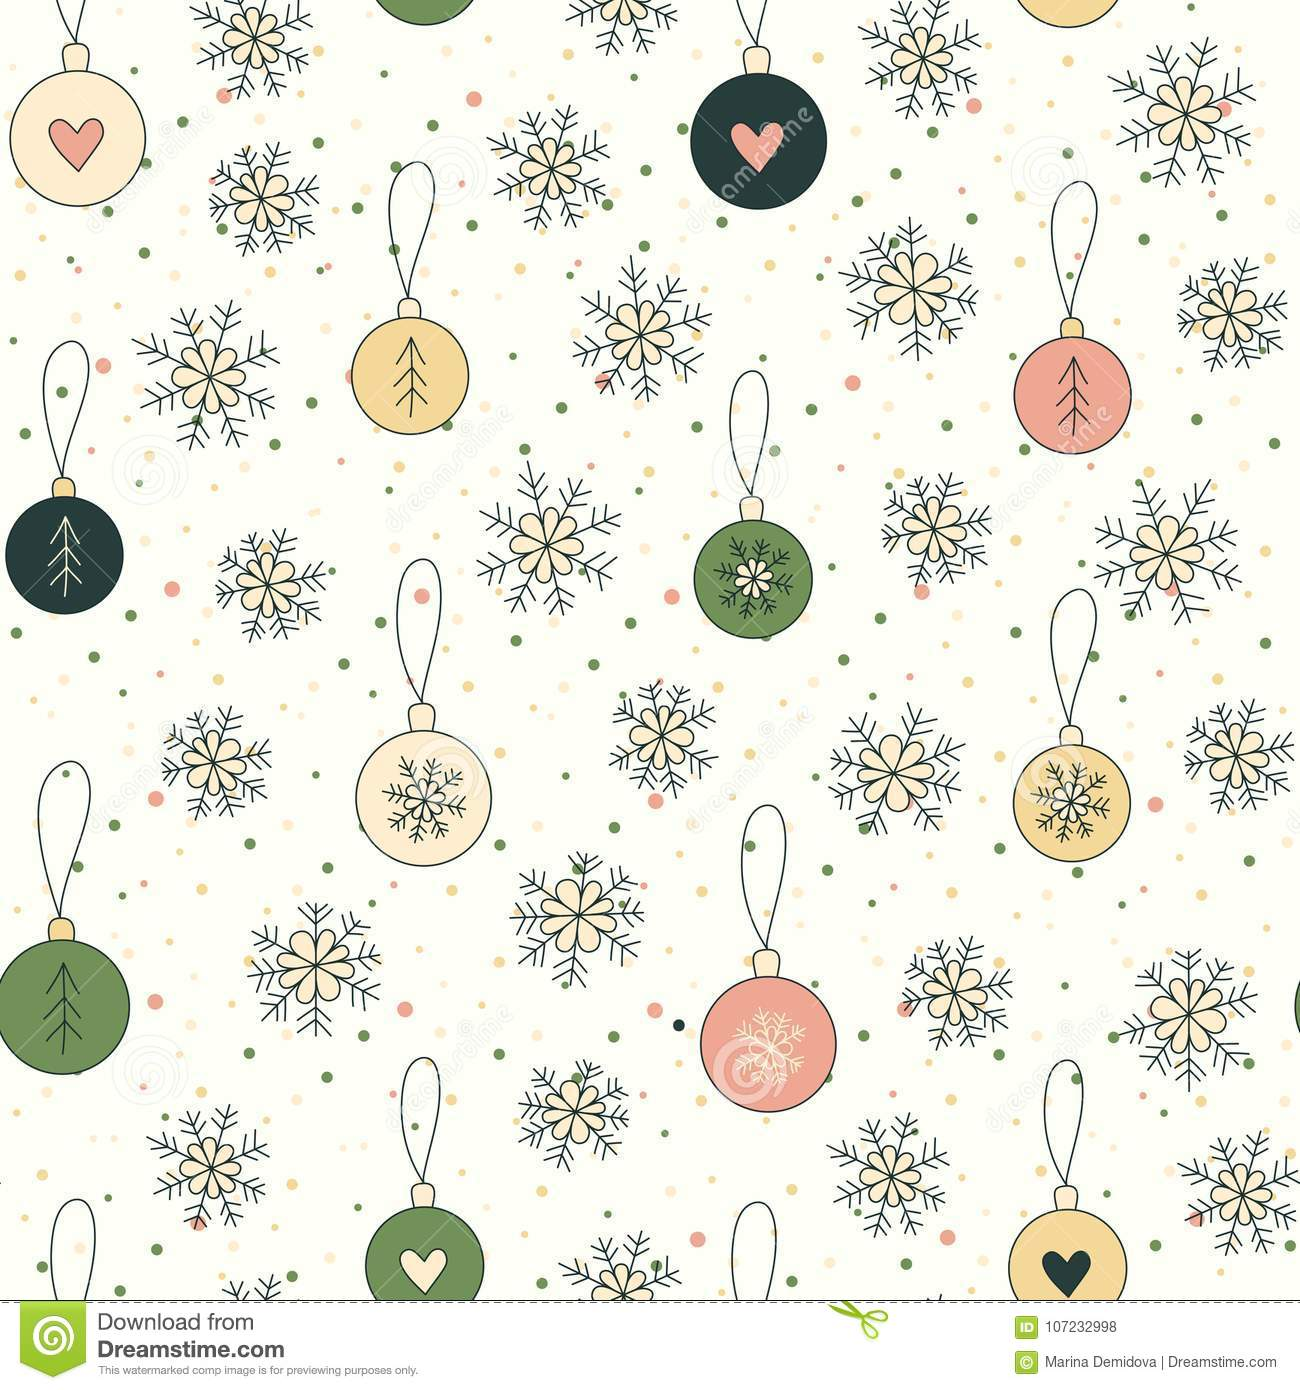 Christmas Backgrounds Cute.Christmas Background With Snowflakes And Balls Stock Vector